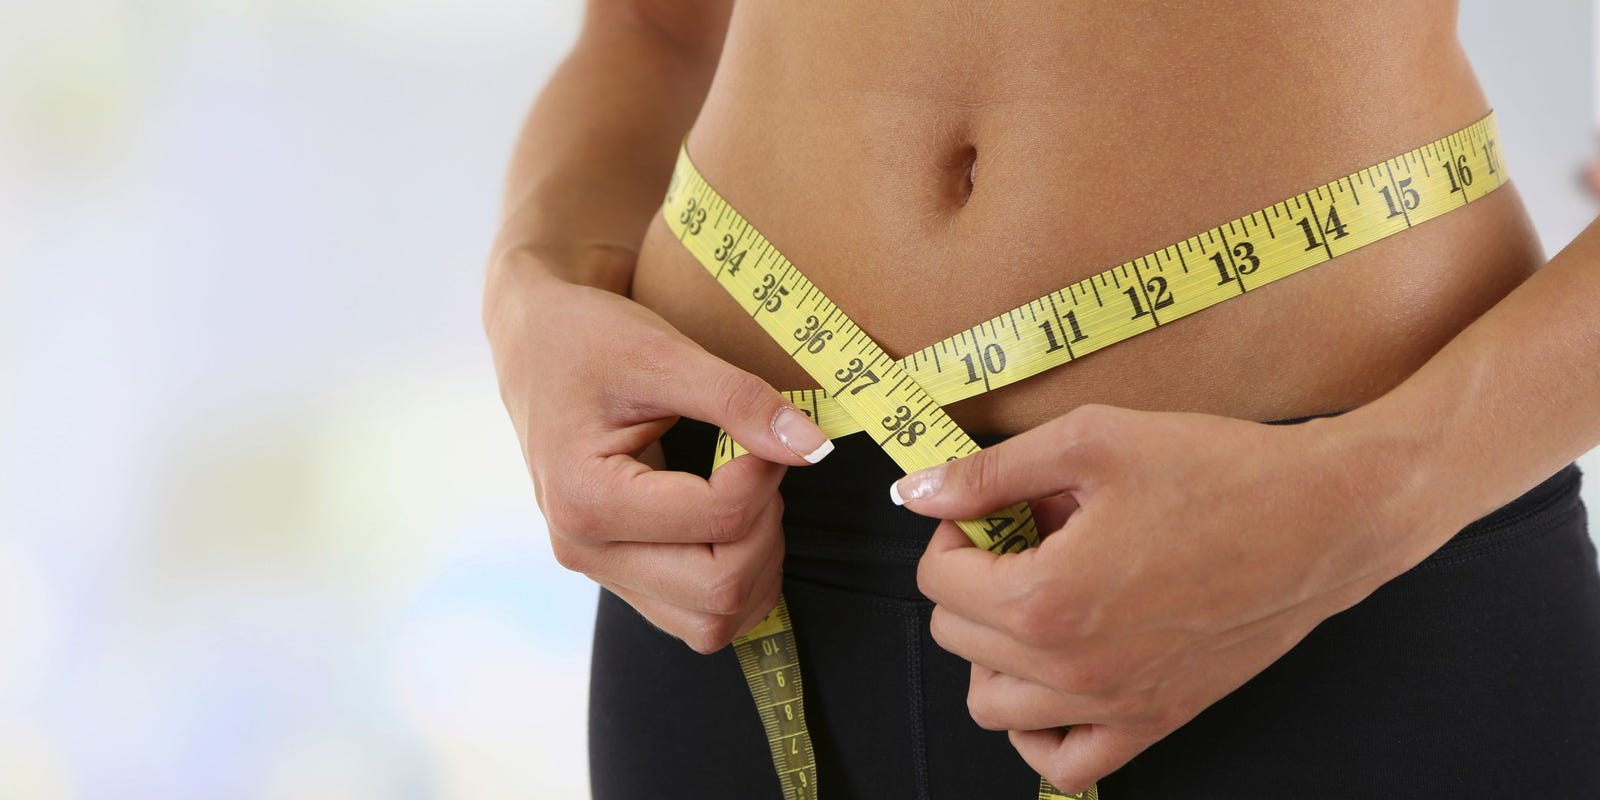 Lose Weight and Get Thin the Lazy Way